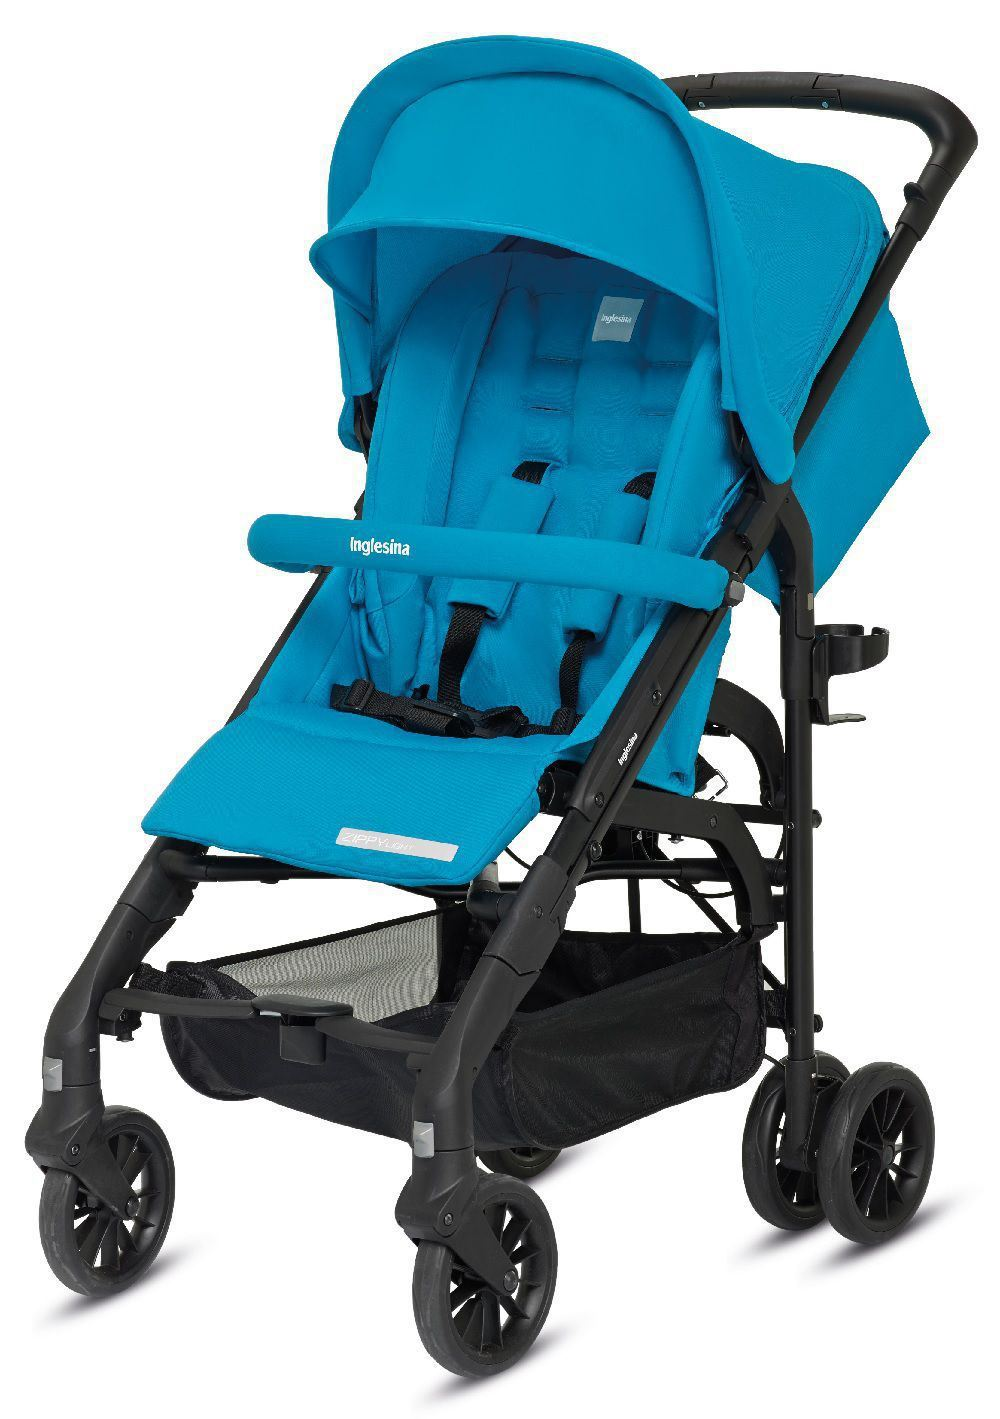 Silla de paseo Zippy Light Inglesina 2016